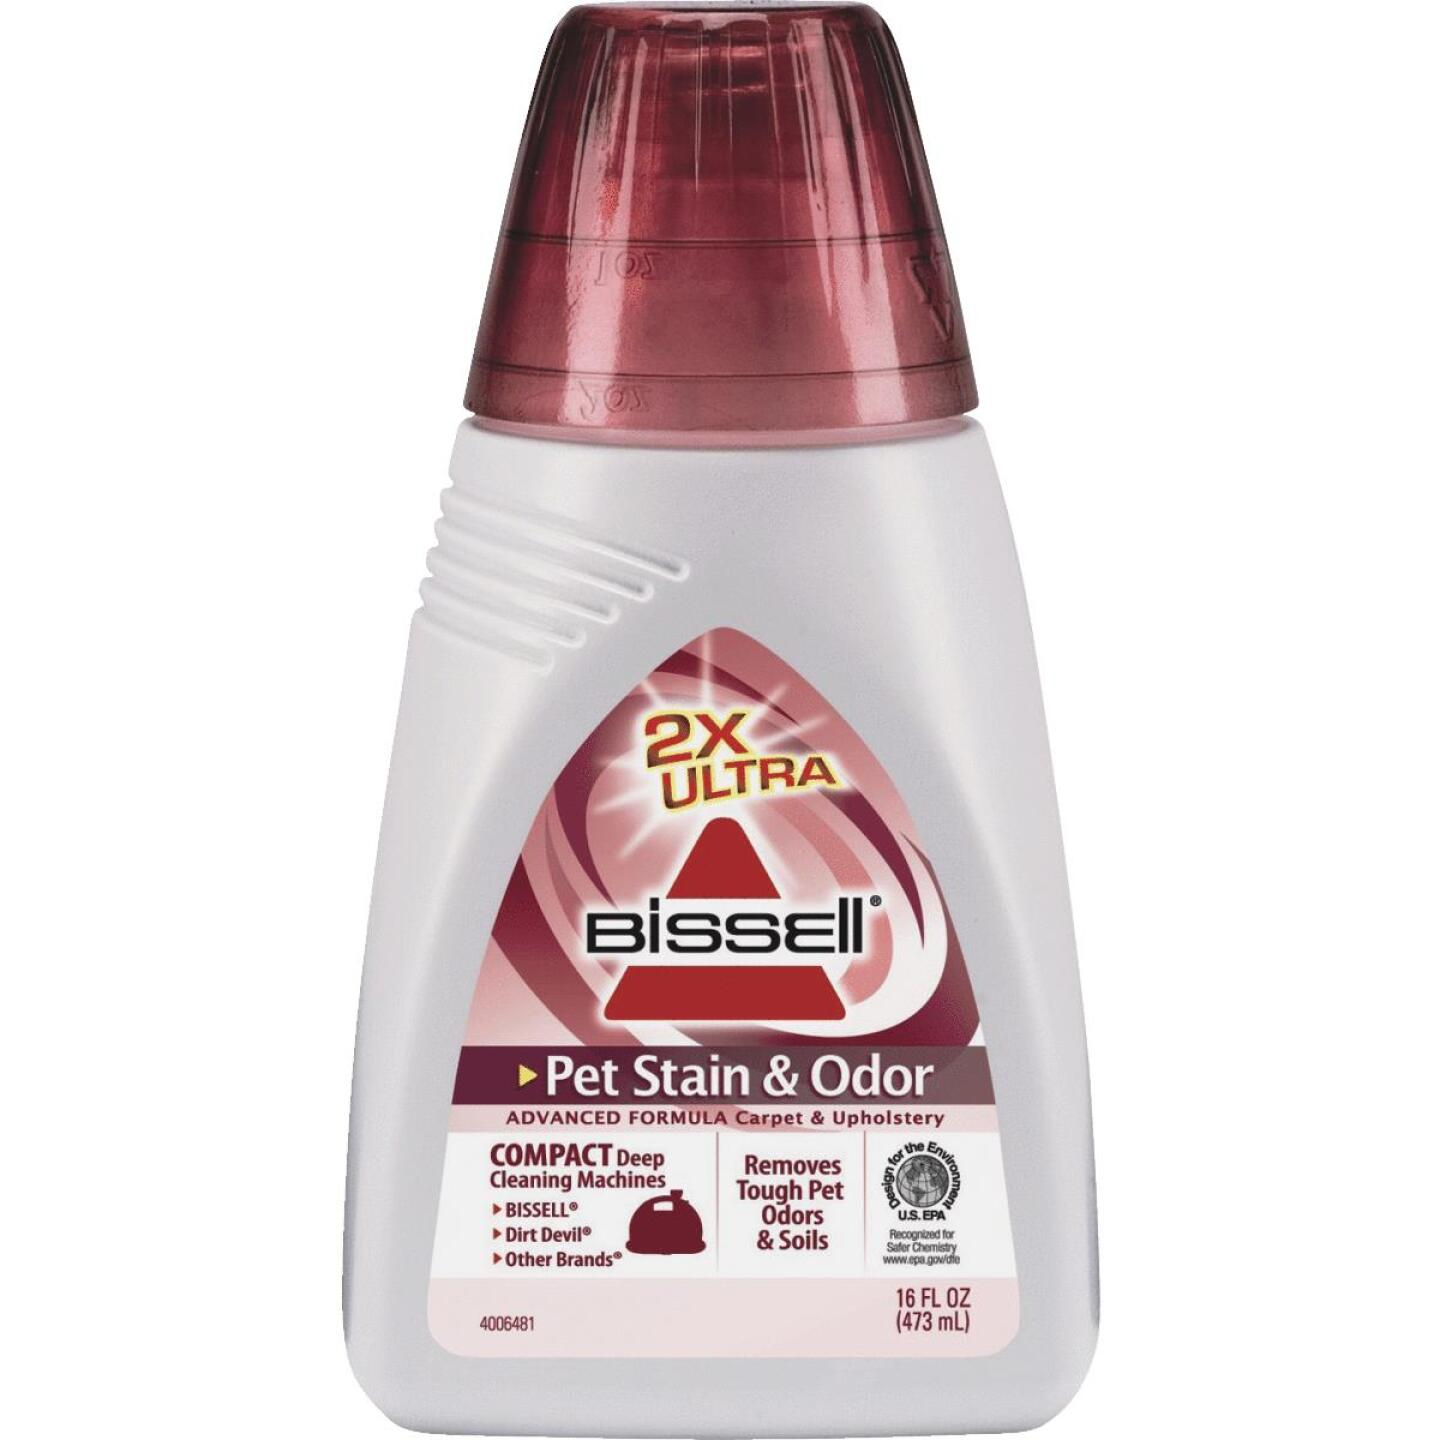 Bissell 16 Oz. Pet Odor And Stain Formula For Carpet And Upholstery Image 1